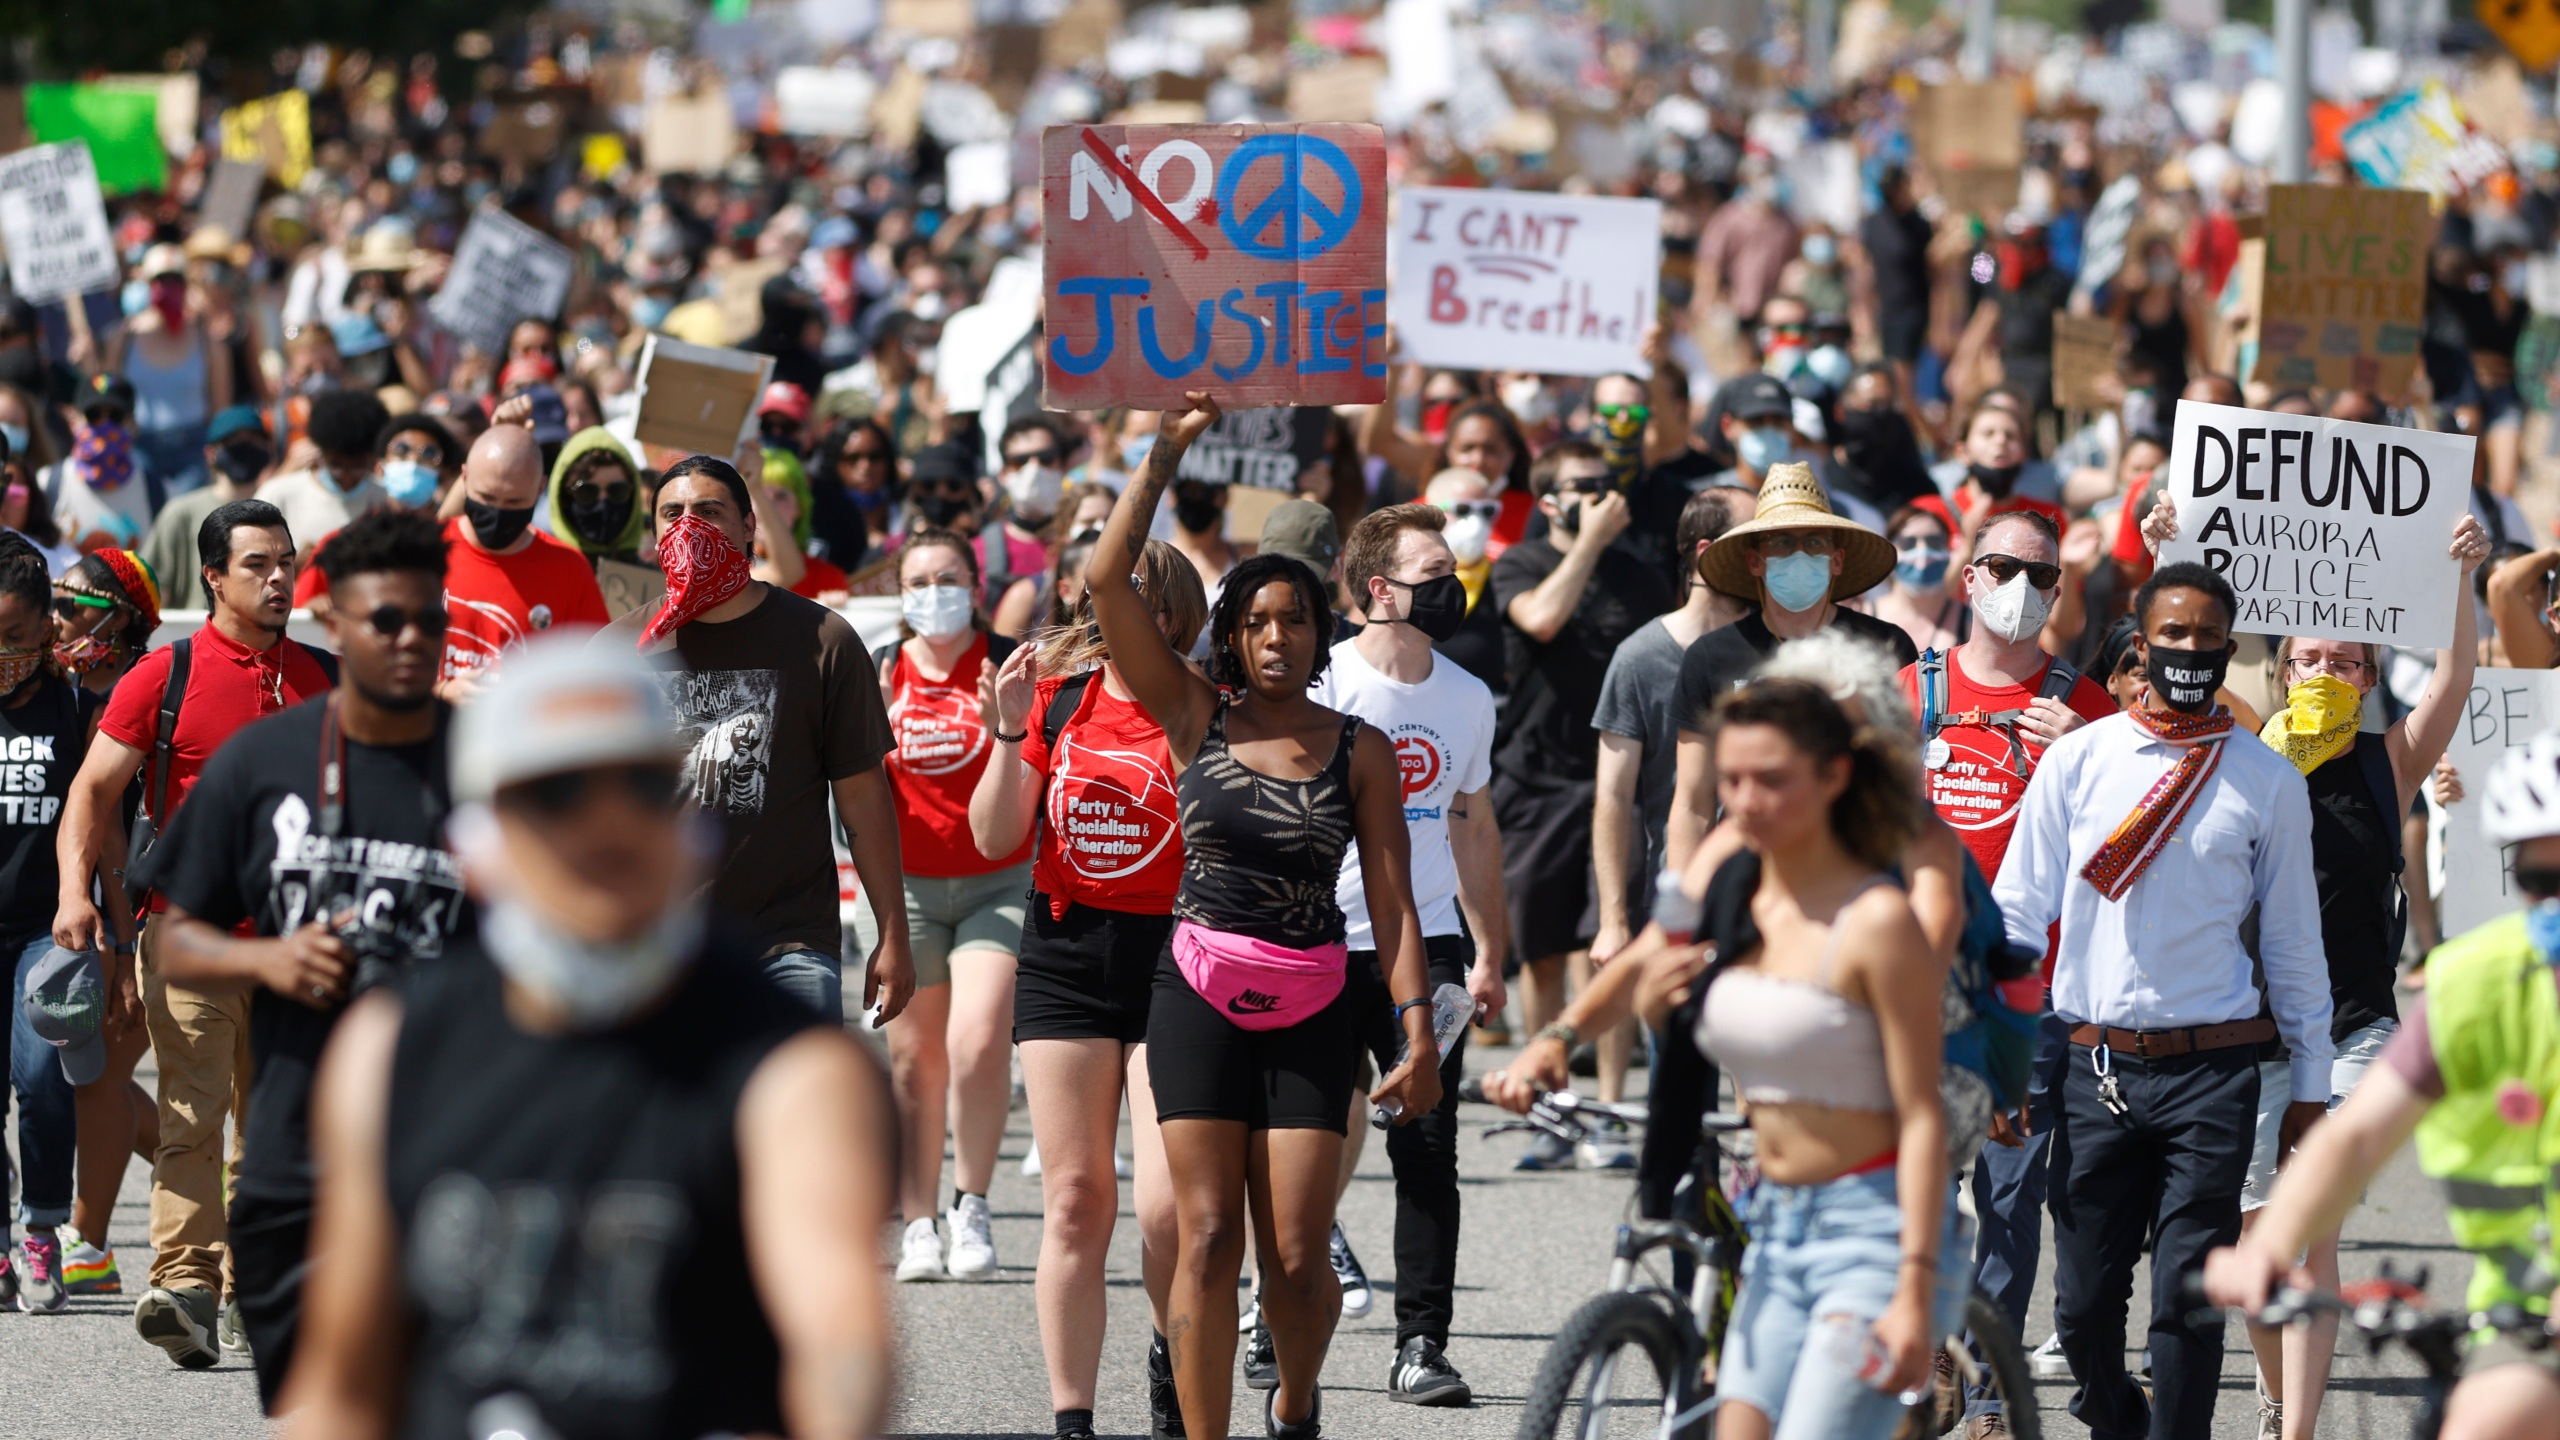 In this Saturday, June 27, 2020, file photo, demonstrators march down Sable Boulevard during a rally and march over the death of 23-year-old Elijah McClain, in Aurora, Colorado. (David Zalubowski / Associated Press)